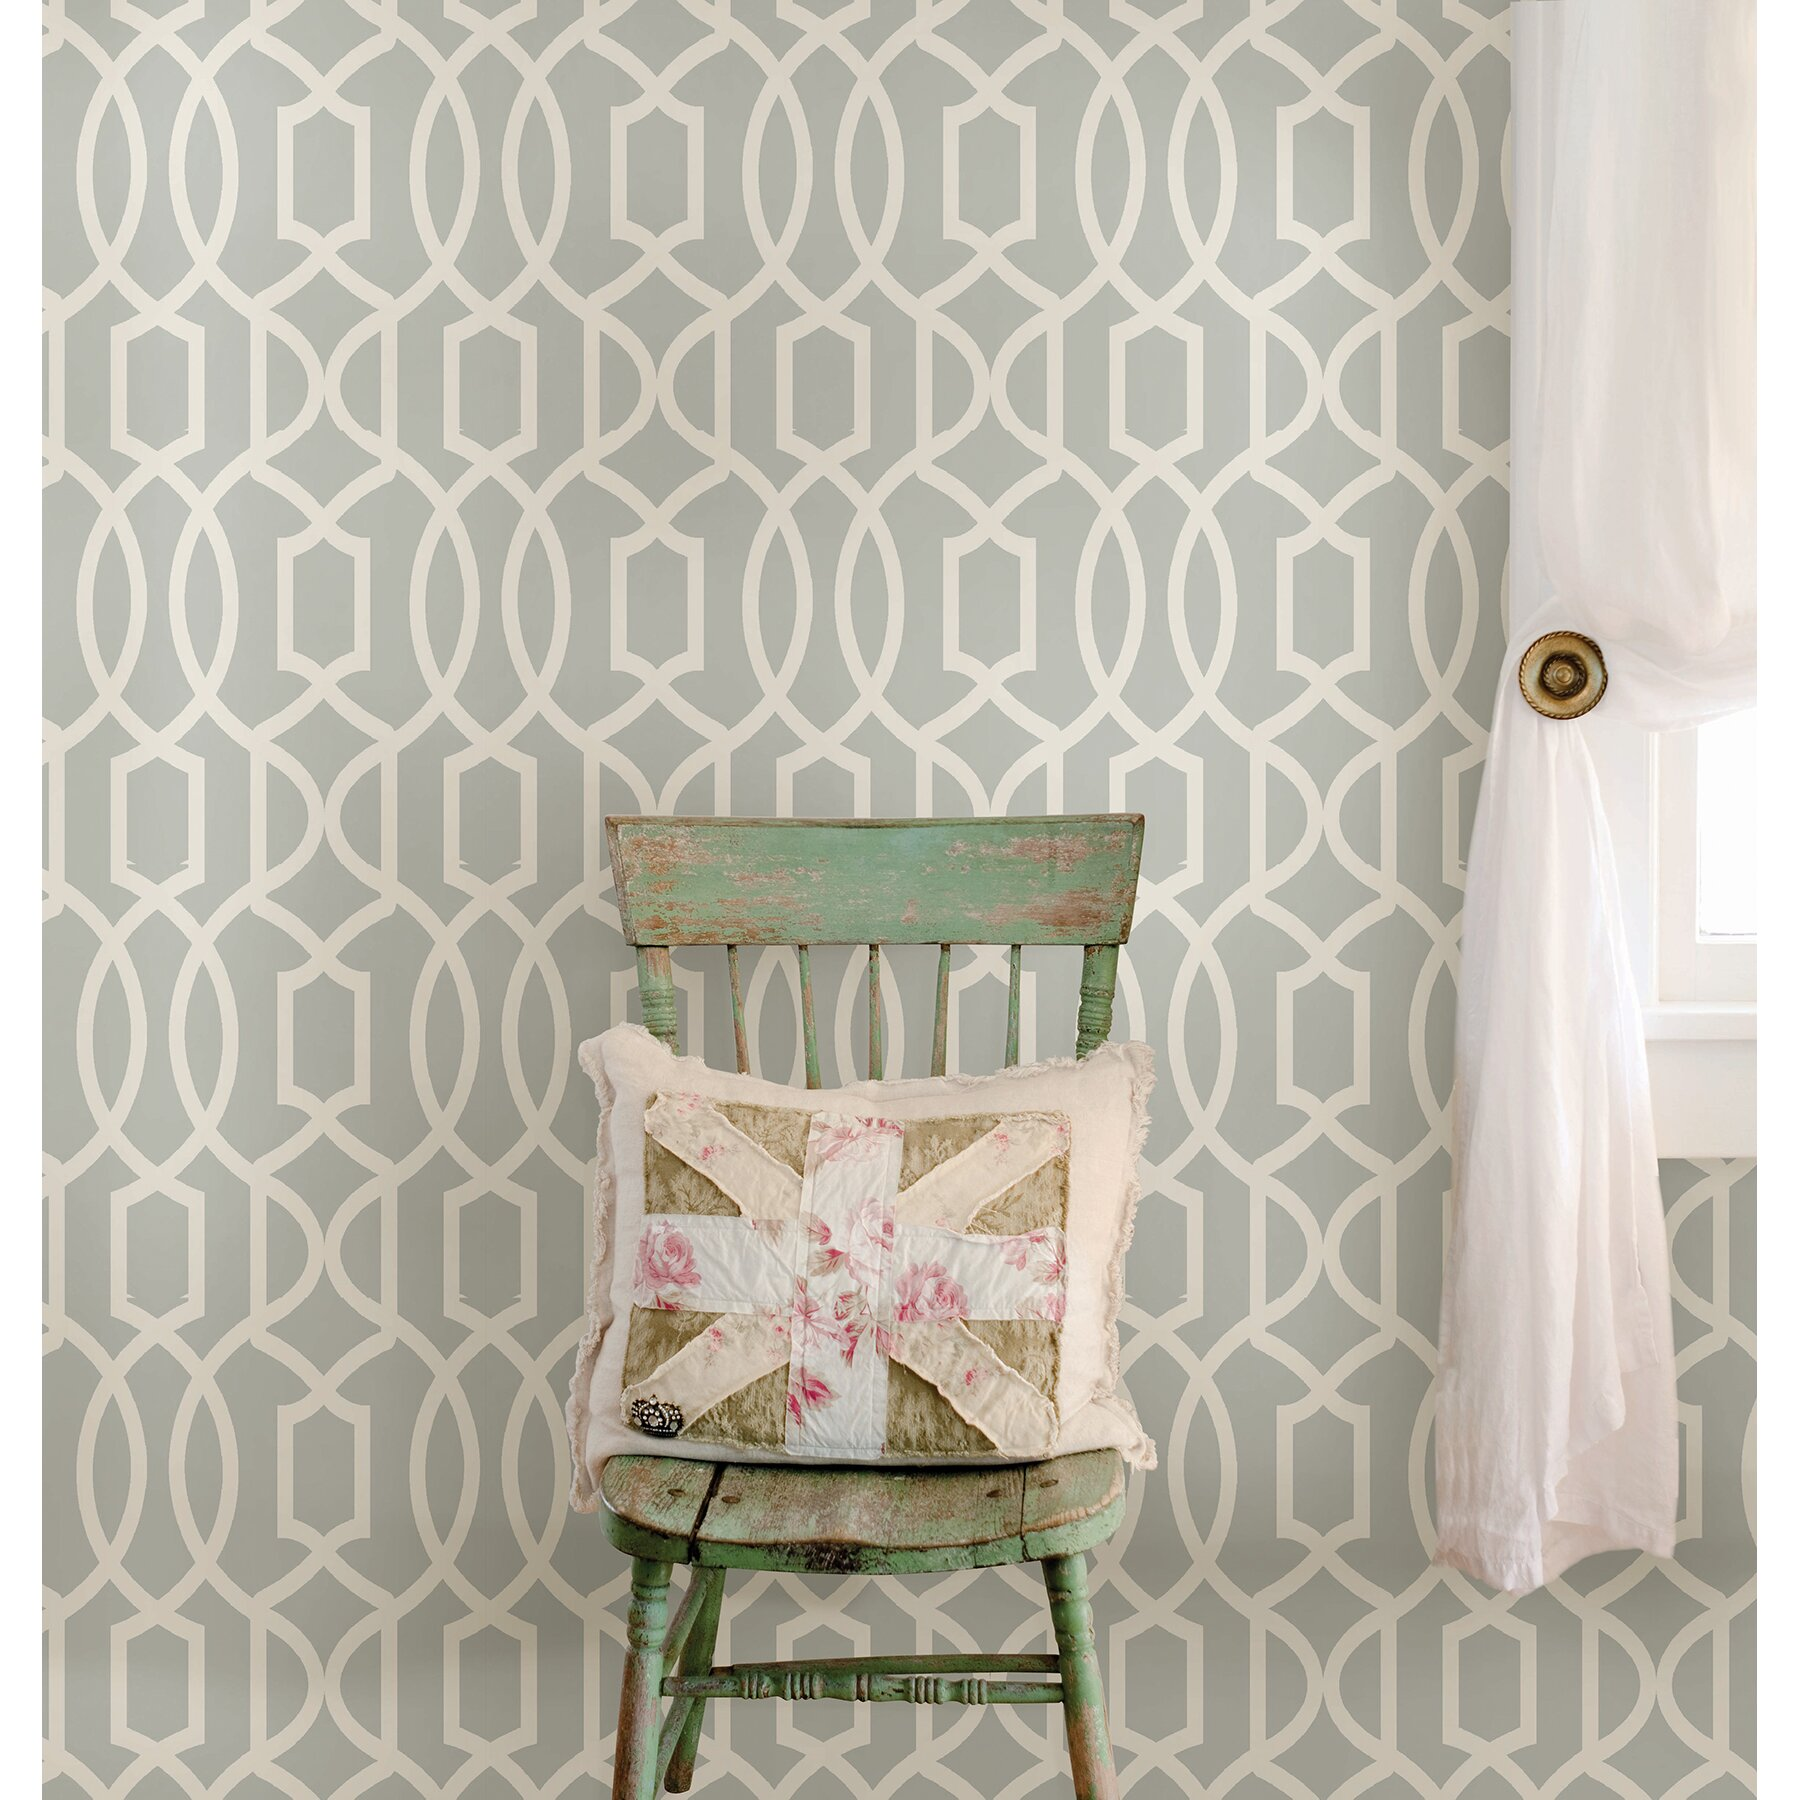 How many feet are in a roll of wallpaper?